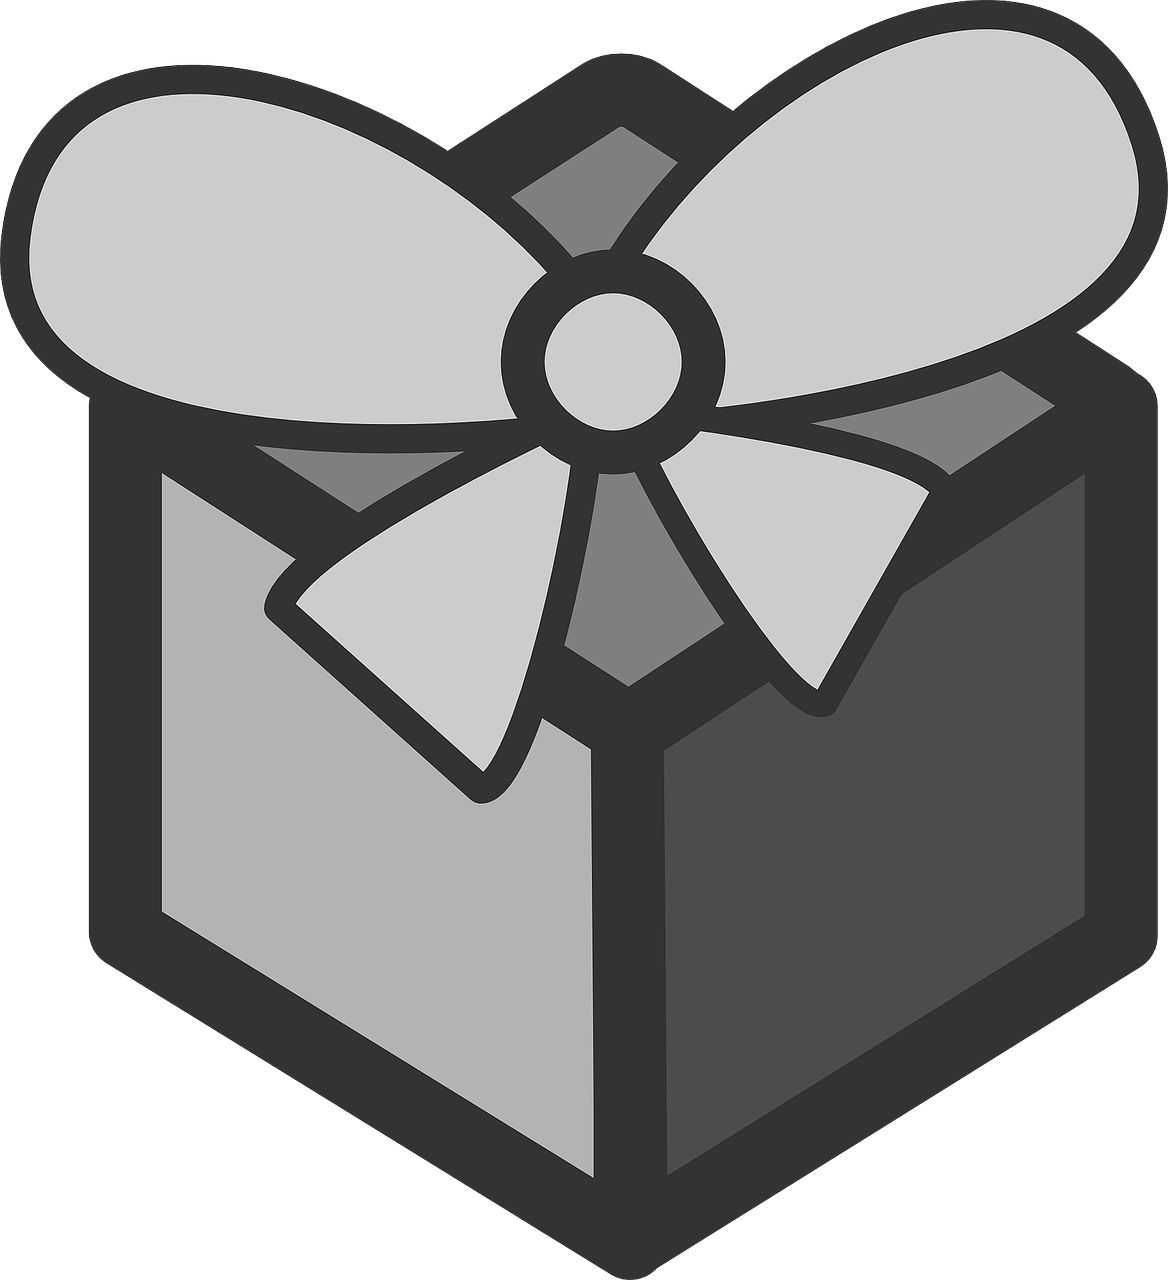 gift,present,box,bow,surprise,celebration,sign,symbol,free vector graphics,free pictures, free photos, free images, royalty free, free illustrations, public domain